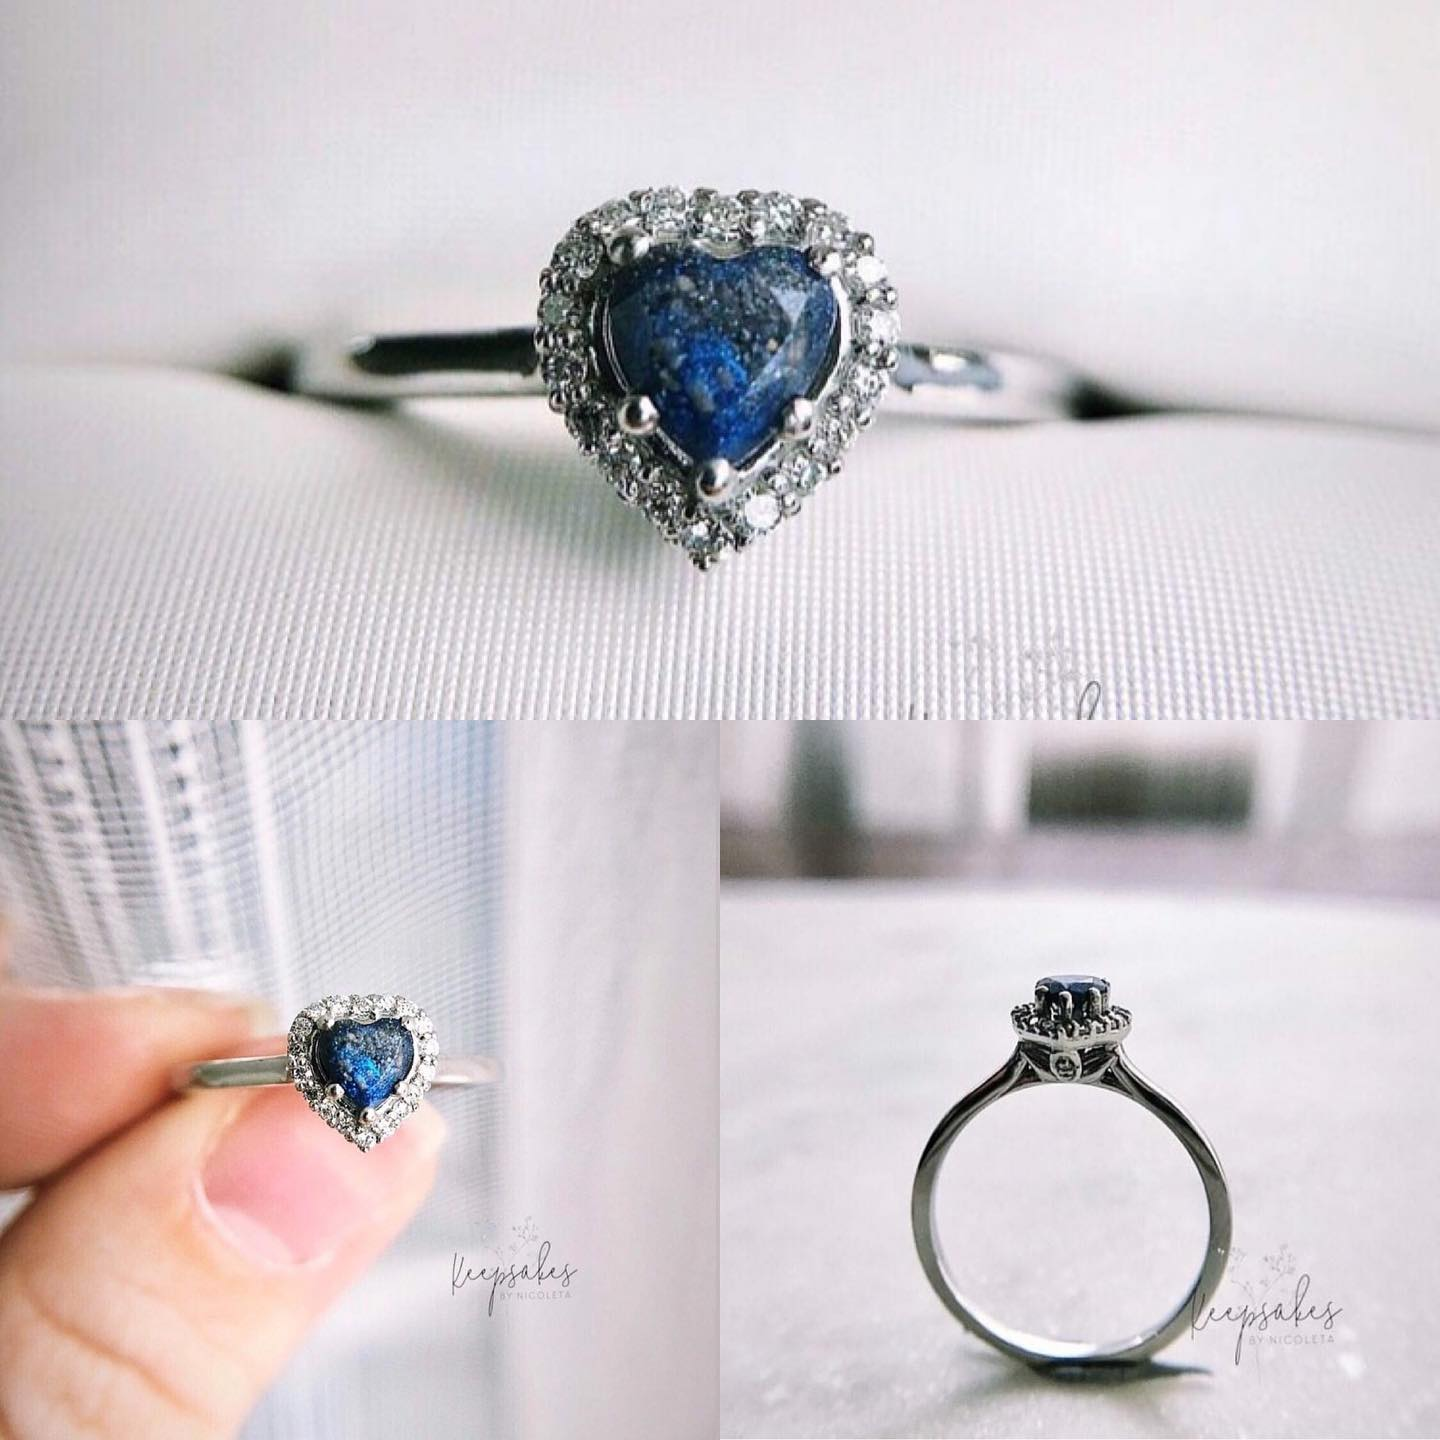 It's OK if you want the Imperial Heart Halo memorial ring